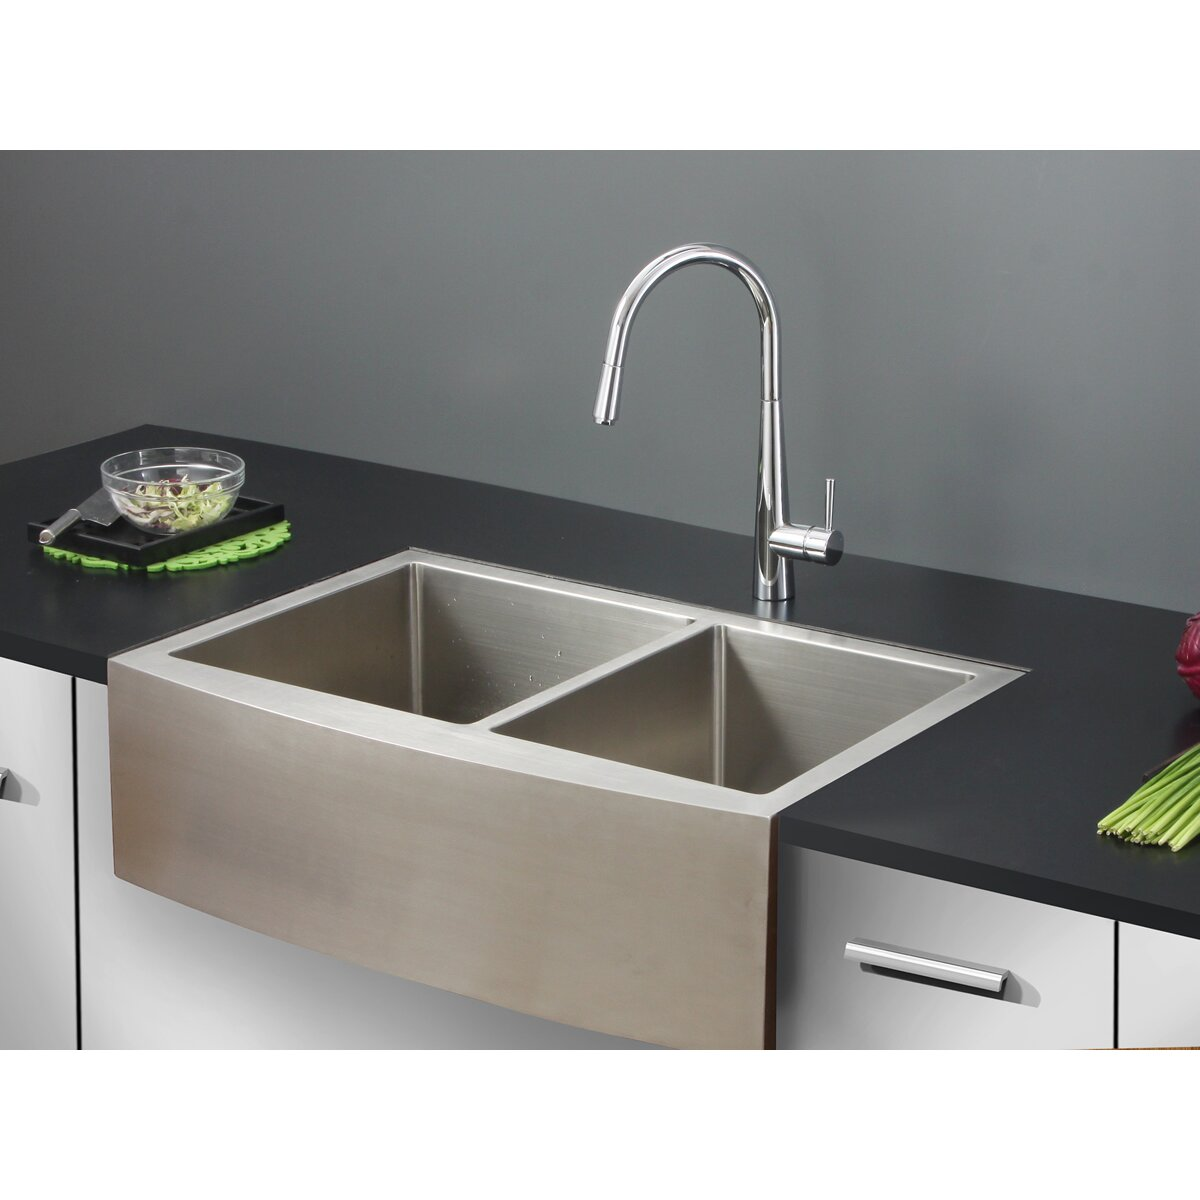 Ruvati verona 33 x 22 apron front double bowl kitchen sink reviews wayfair - Kitchen sinks apron front ...